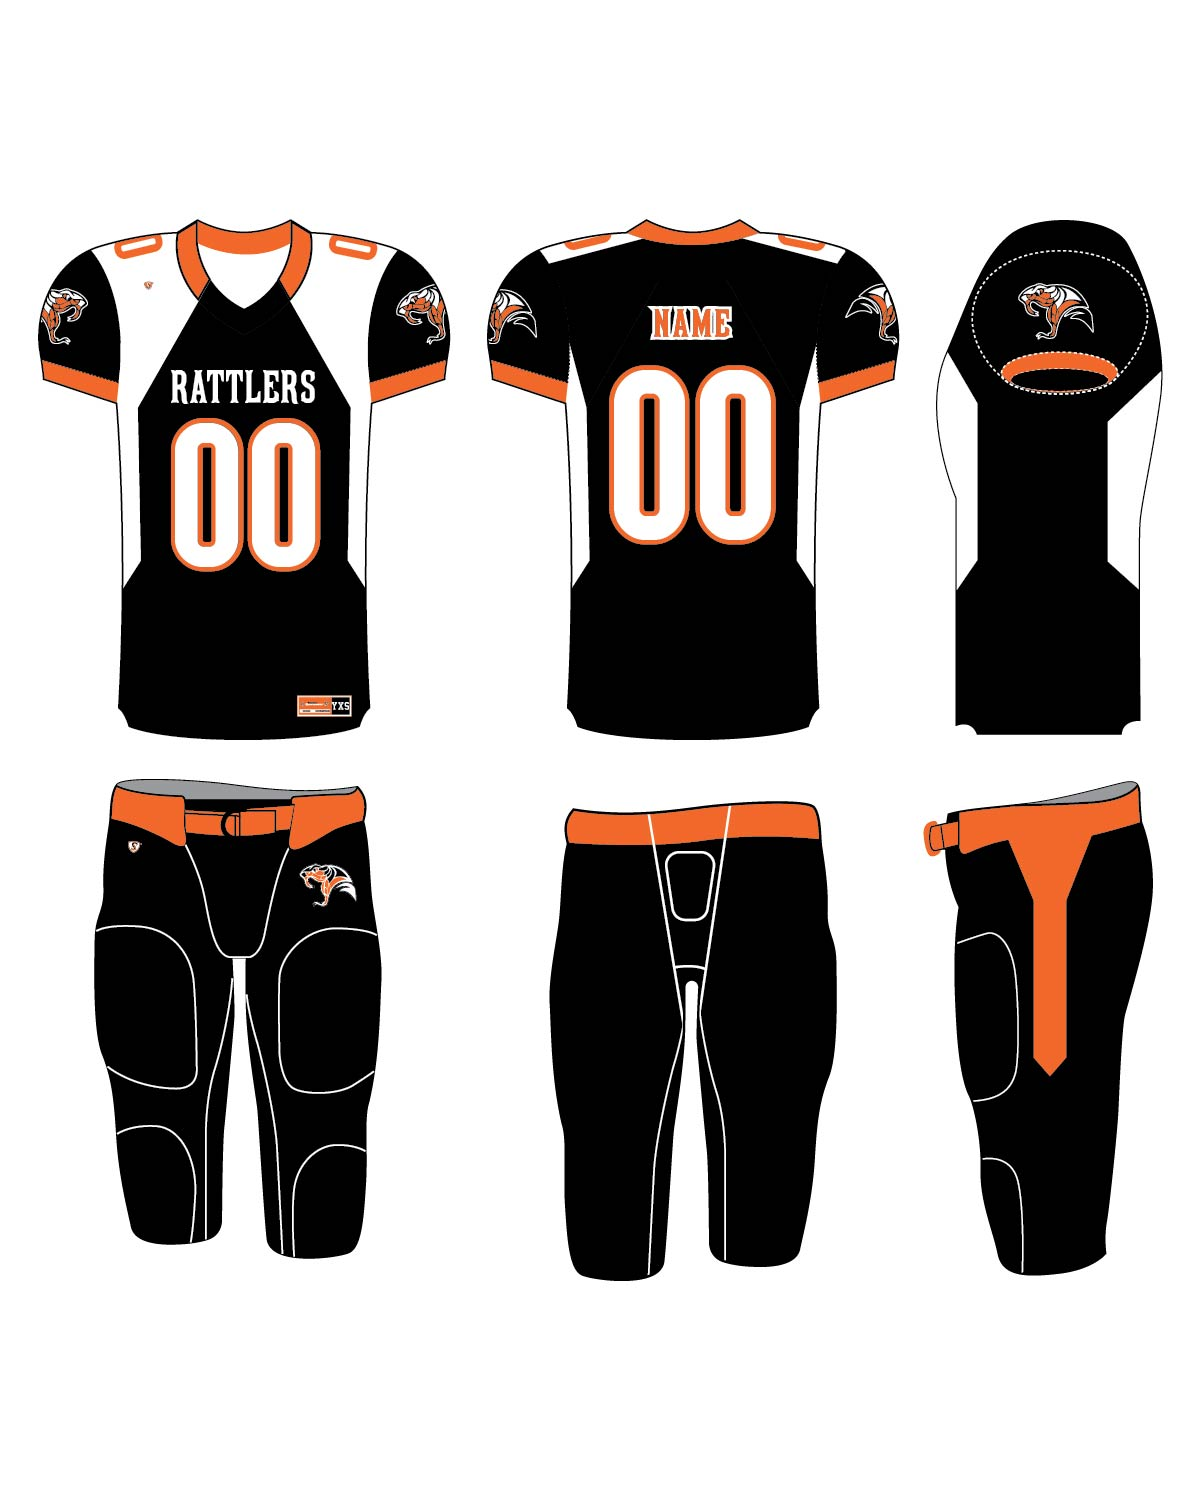 Custom Sublimated Football Uniform - Rattlers 2